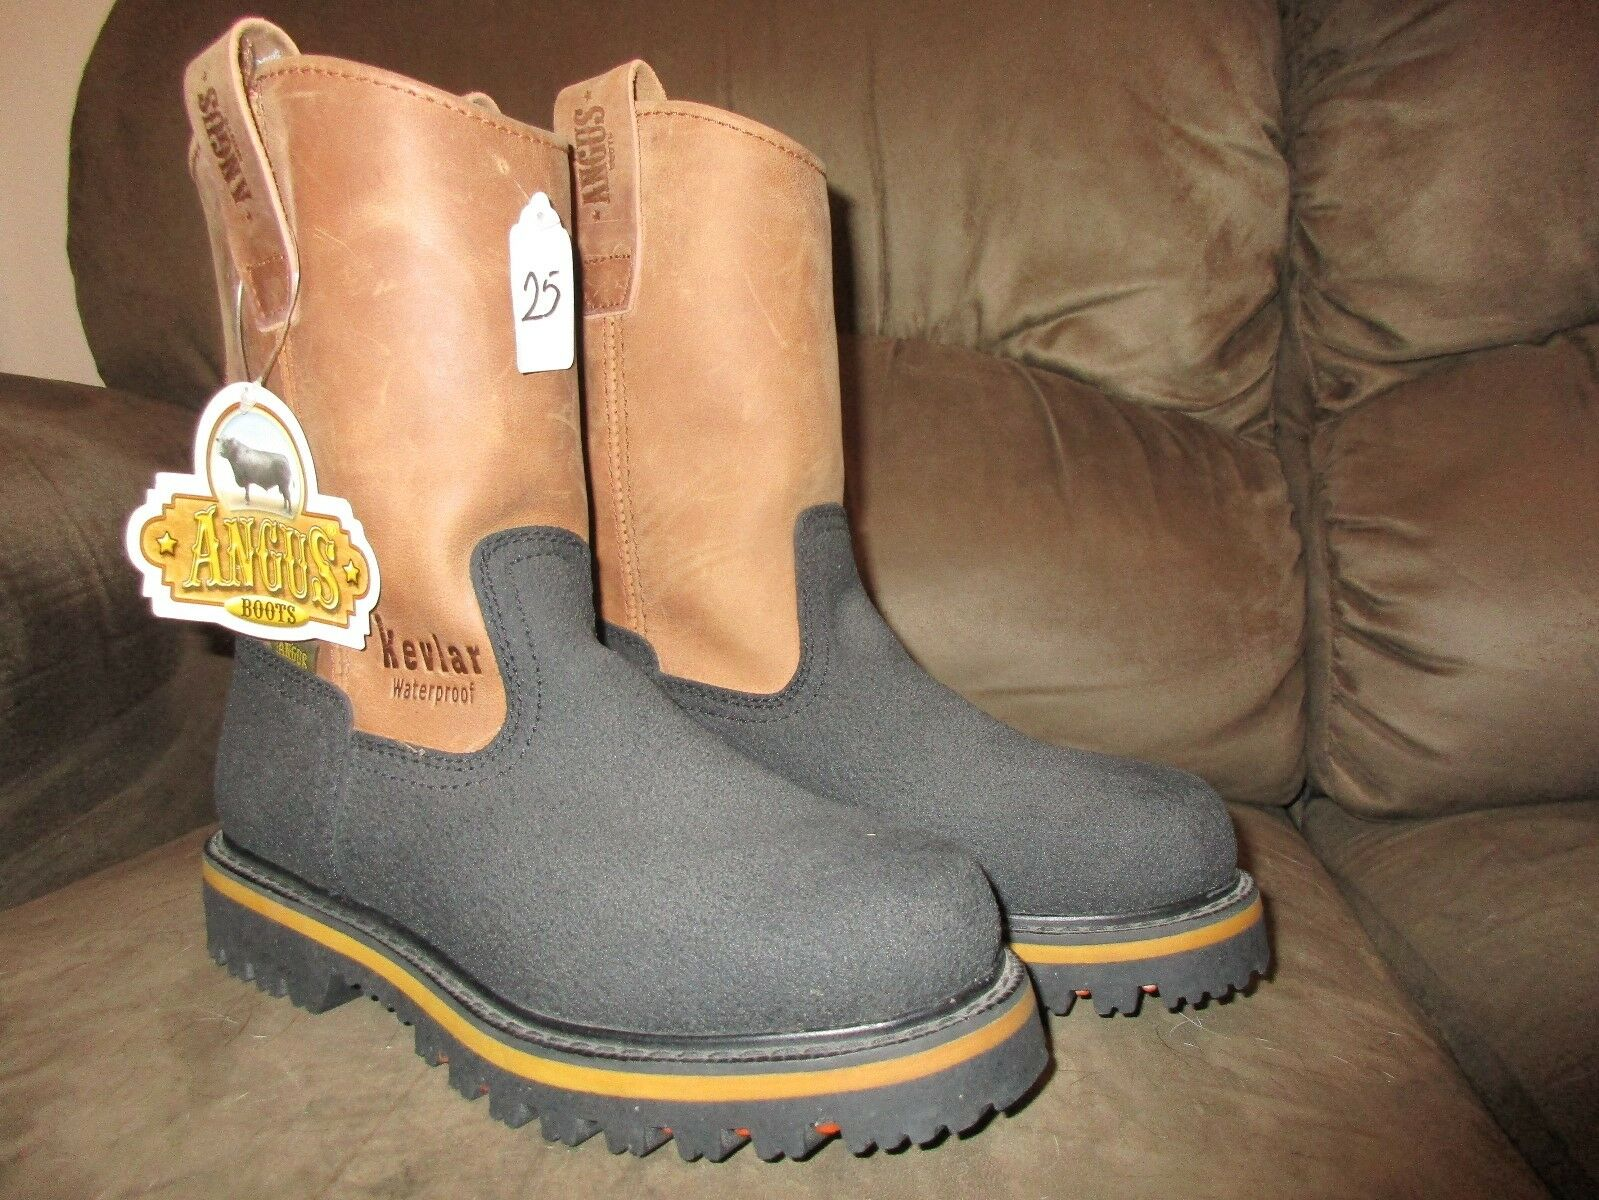 Angus work work Angus boots black and brown leather a54deb